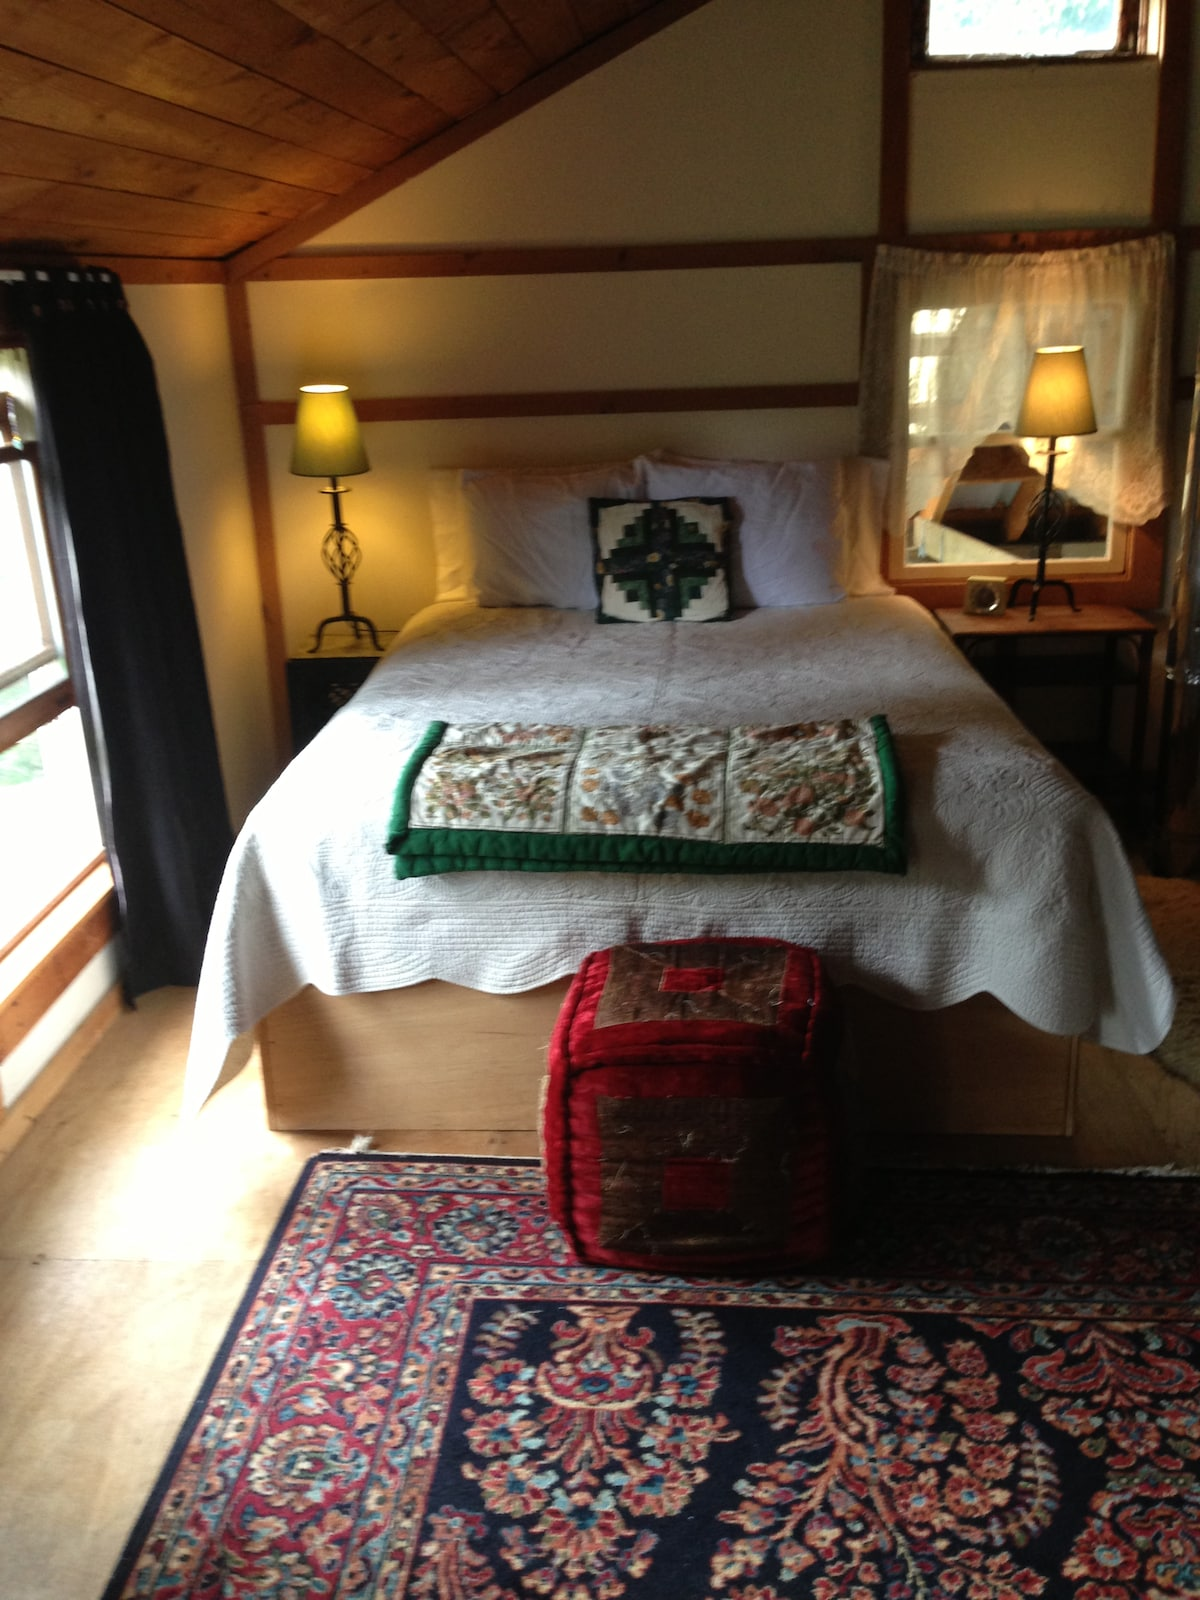 Upstairs - the main bed